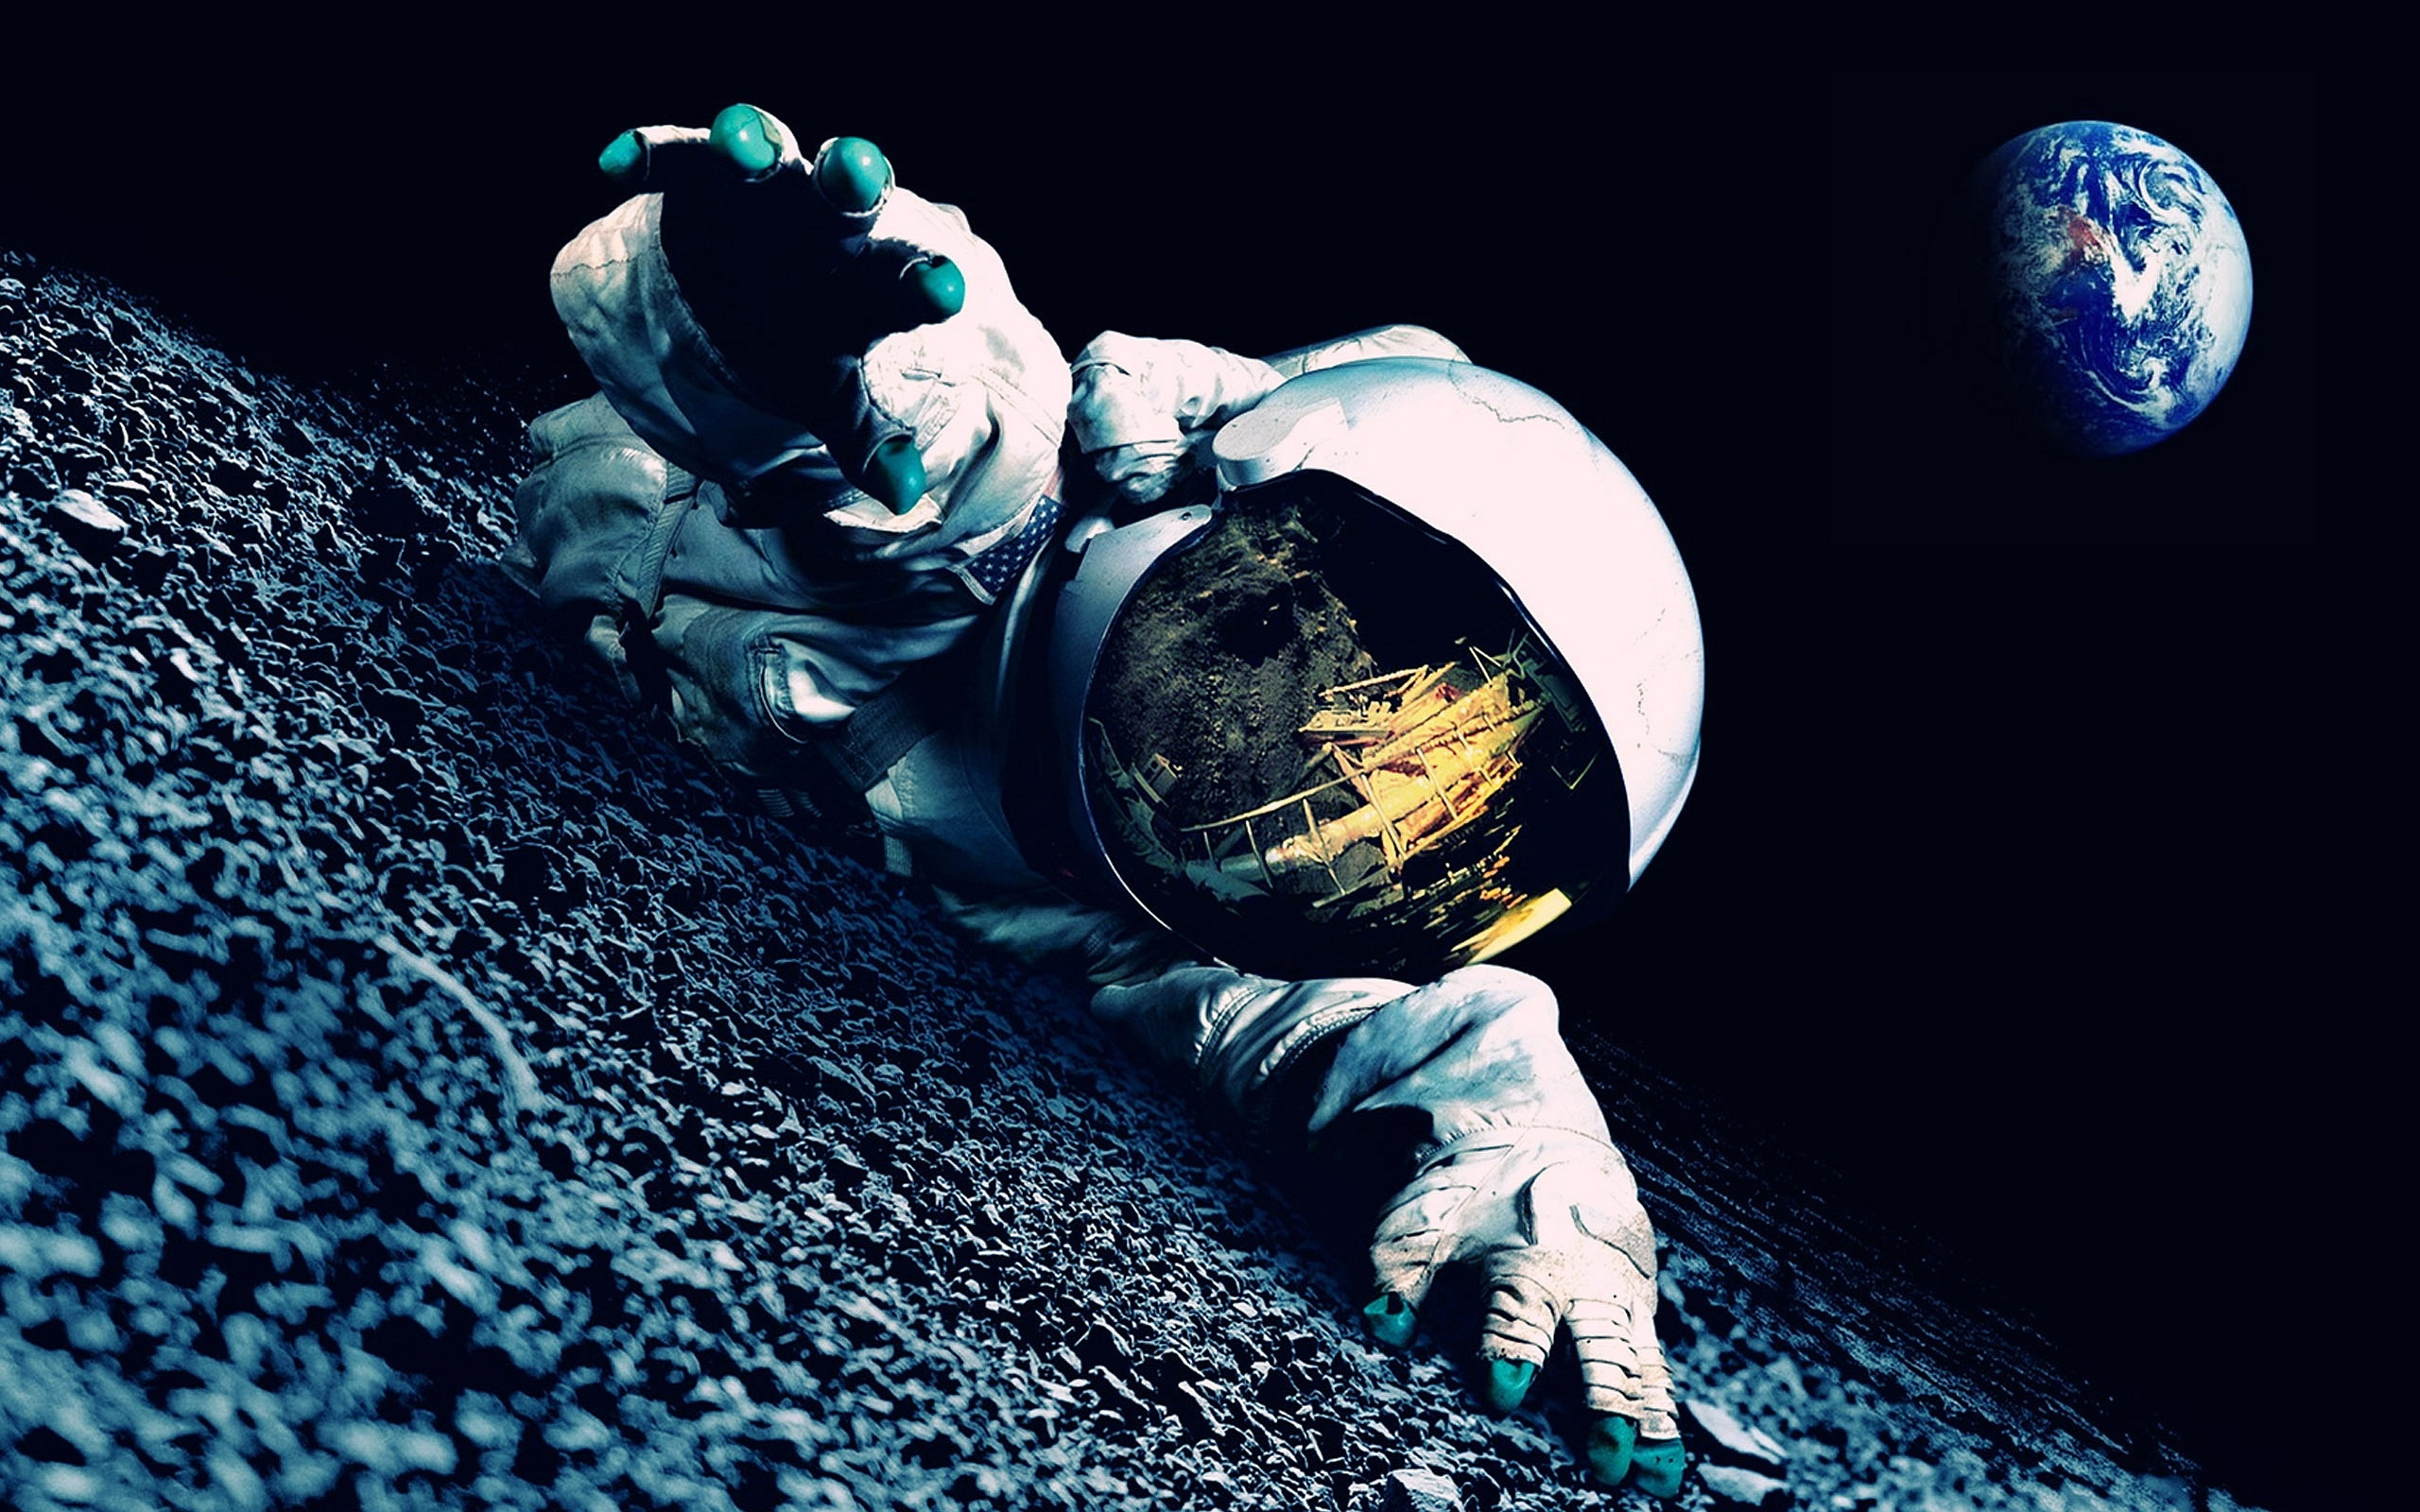 Astronaut trouble Wallpaper in 2560x1600 Widescreen